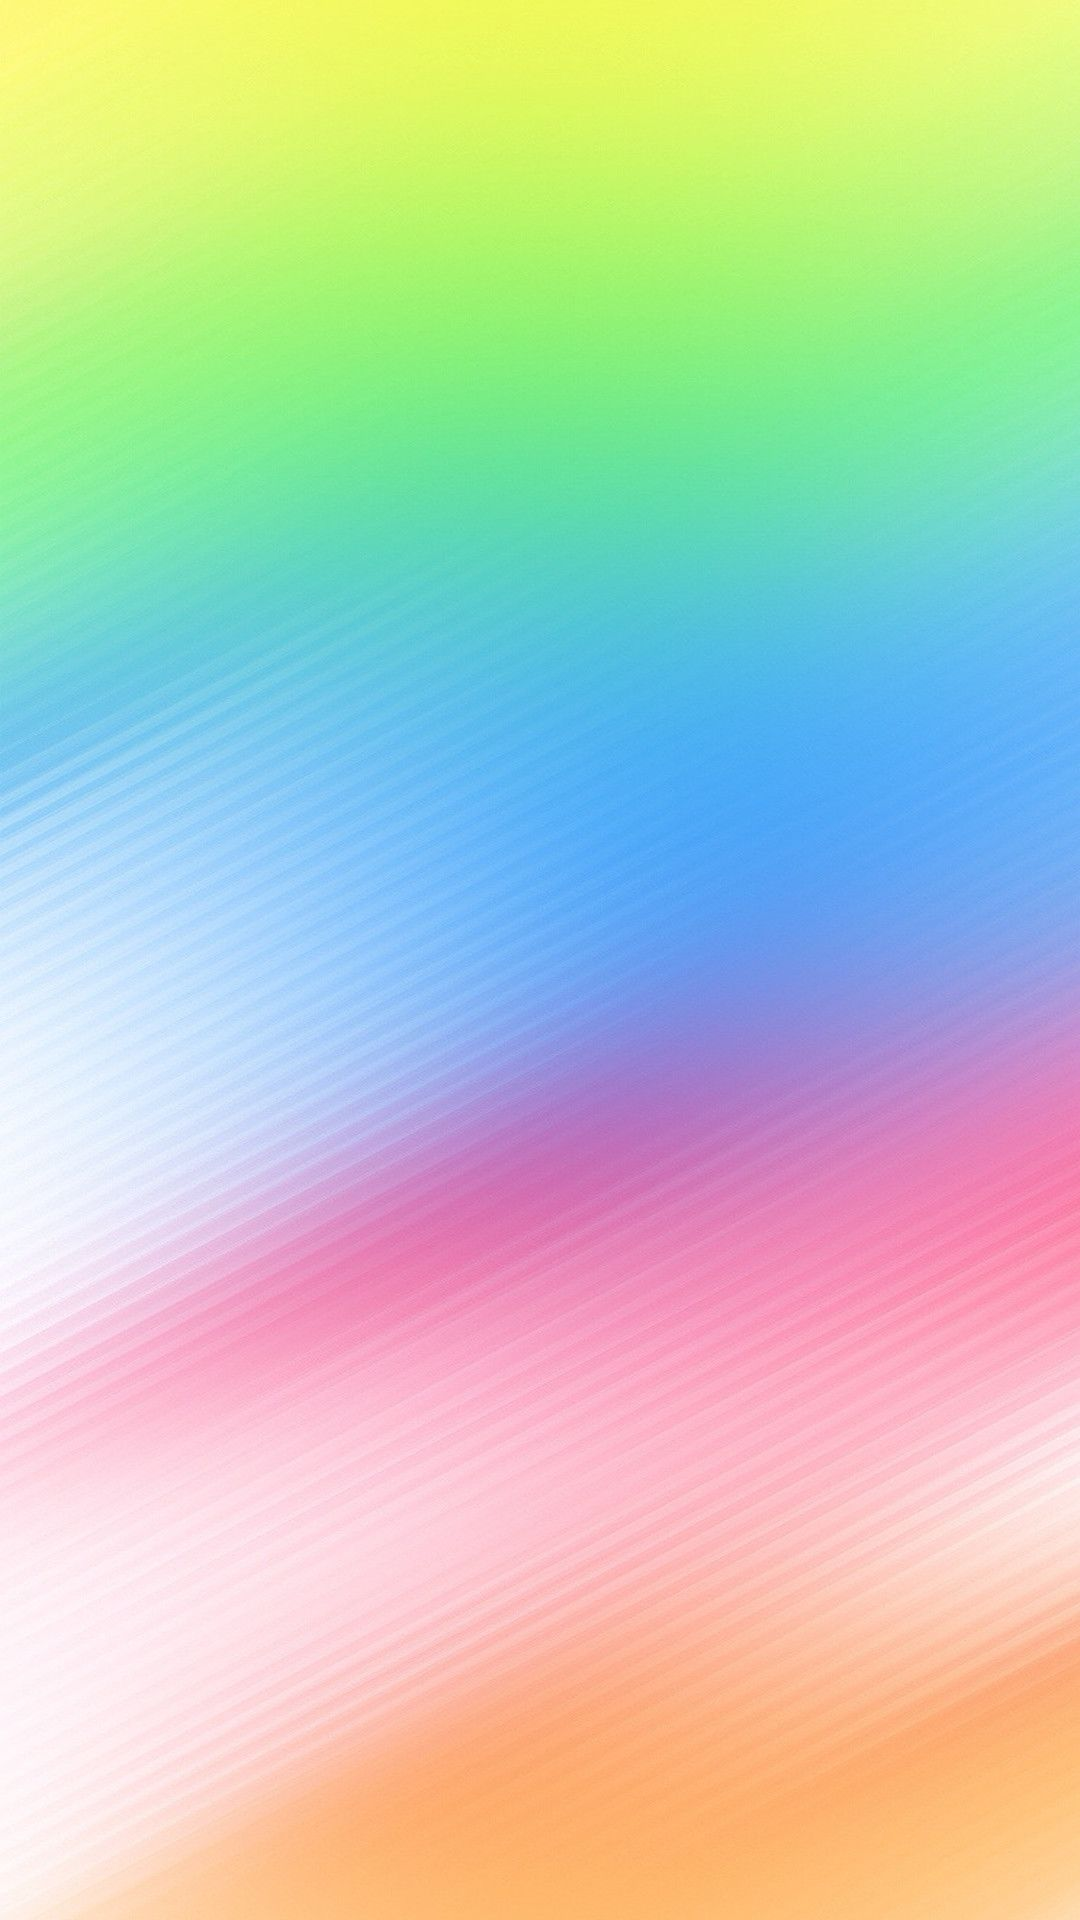 64 Ios Dynamic Wallpapers On Wallpaperplay With Images